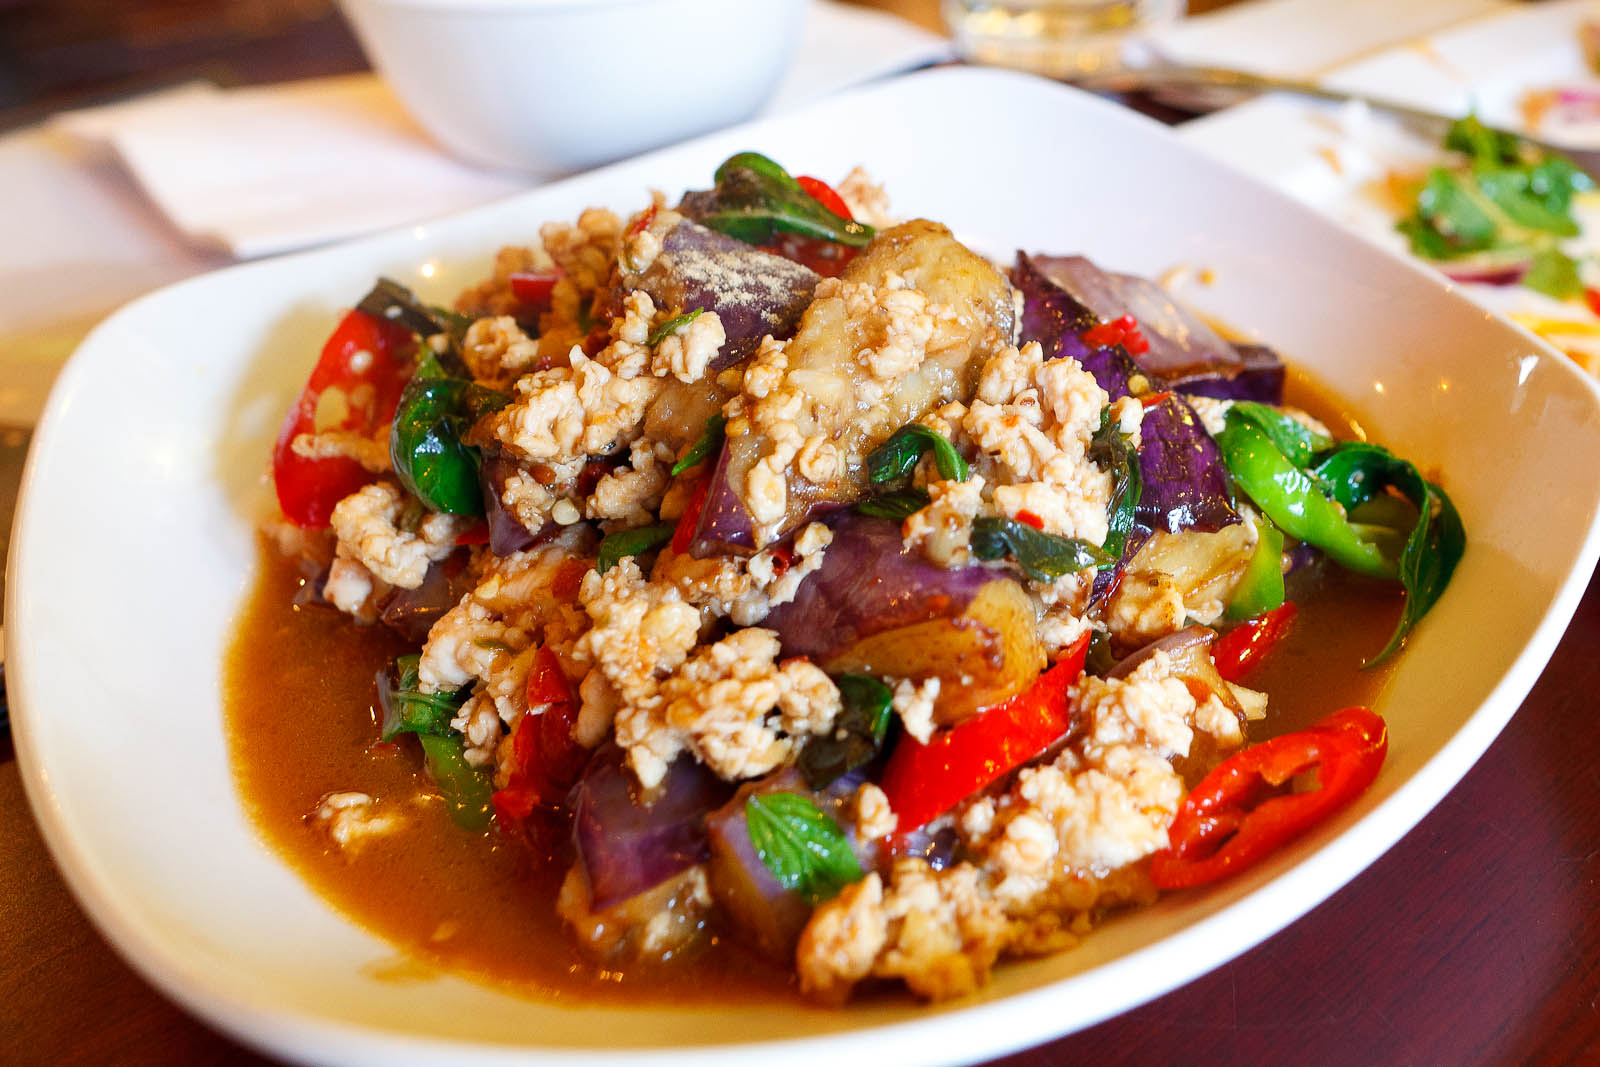 Sauteed eggplant with ground chicken, garlic, chili, and basil leaves ($9)